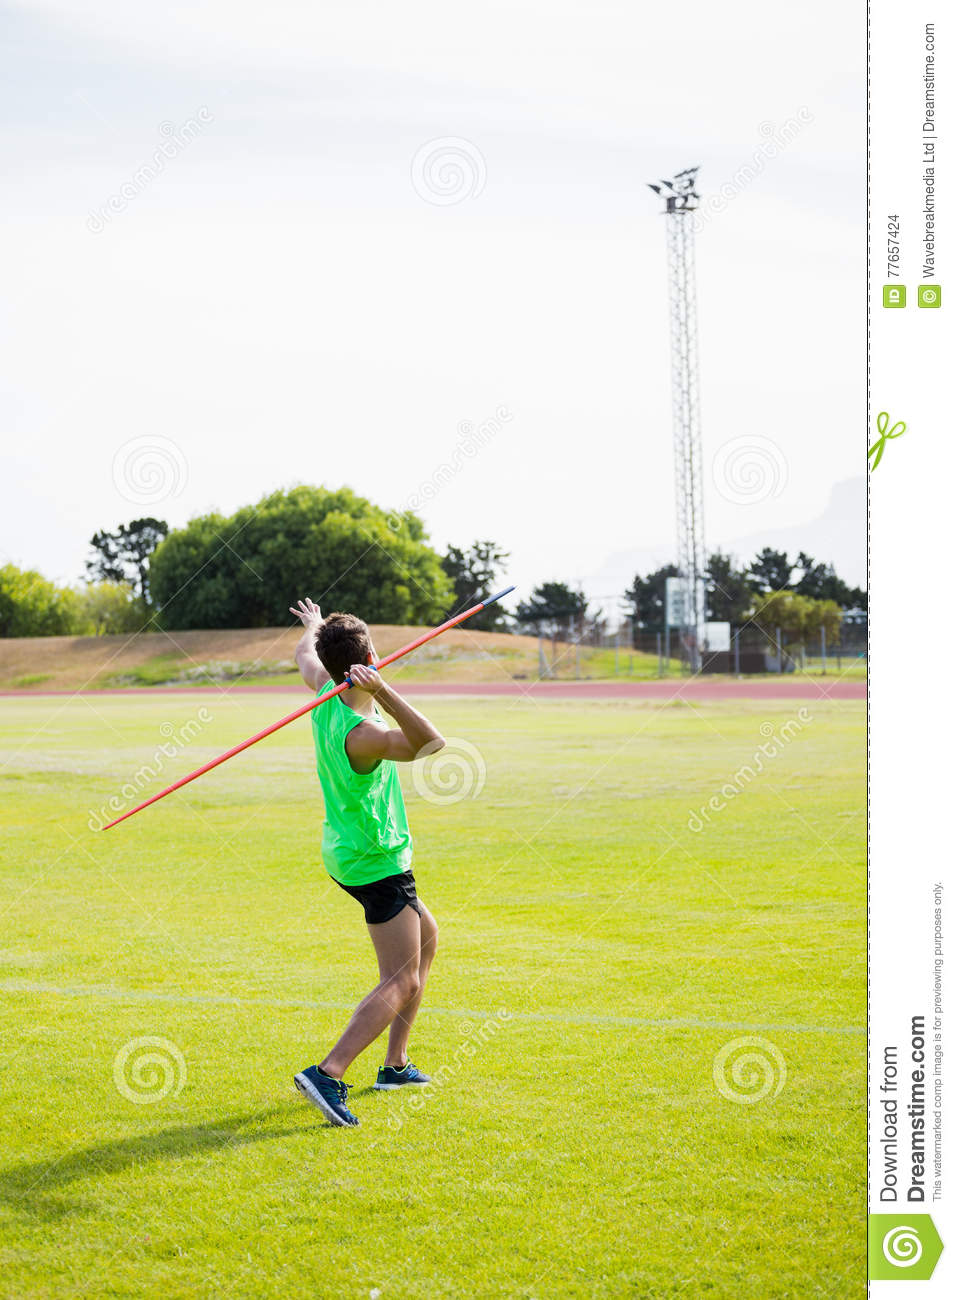 Rear view of an athlete about to throw a javelin